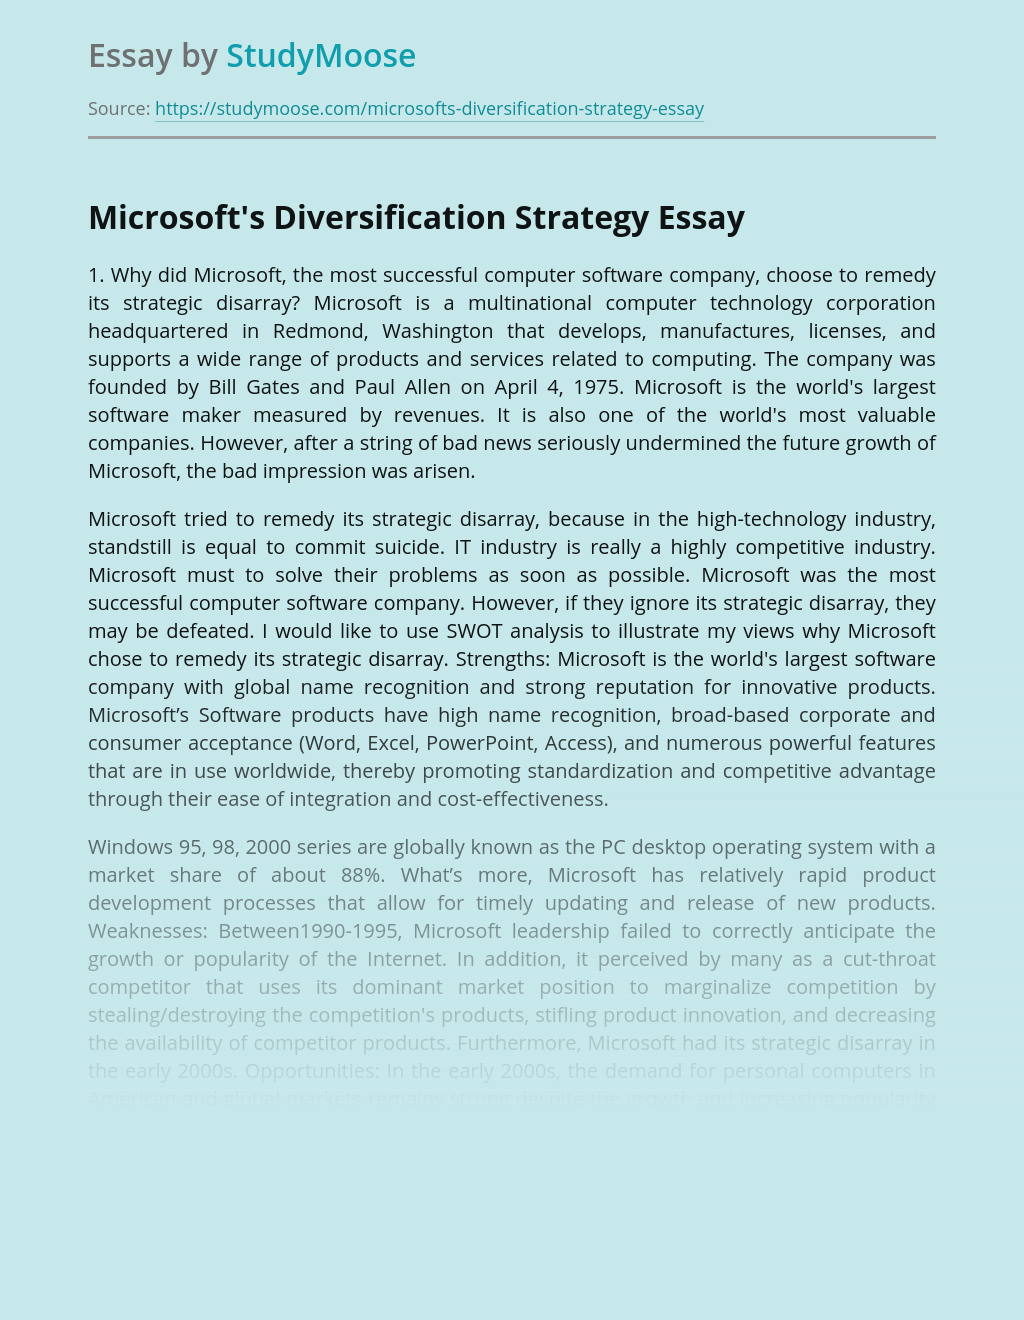 Microsoft's Diversification Strategy in Business